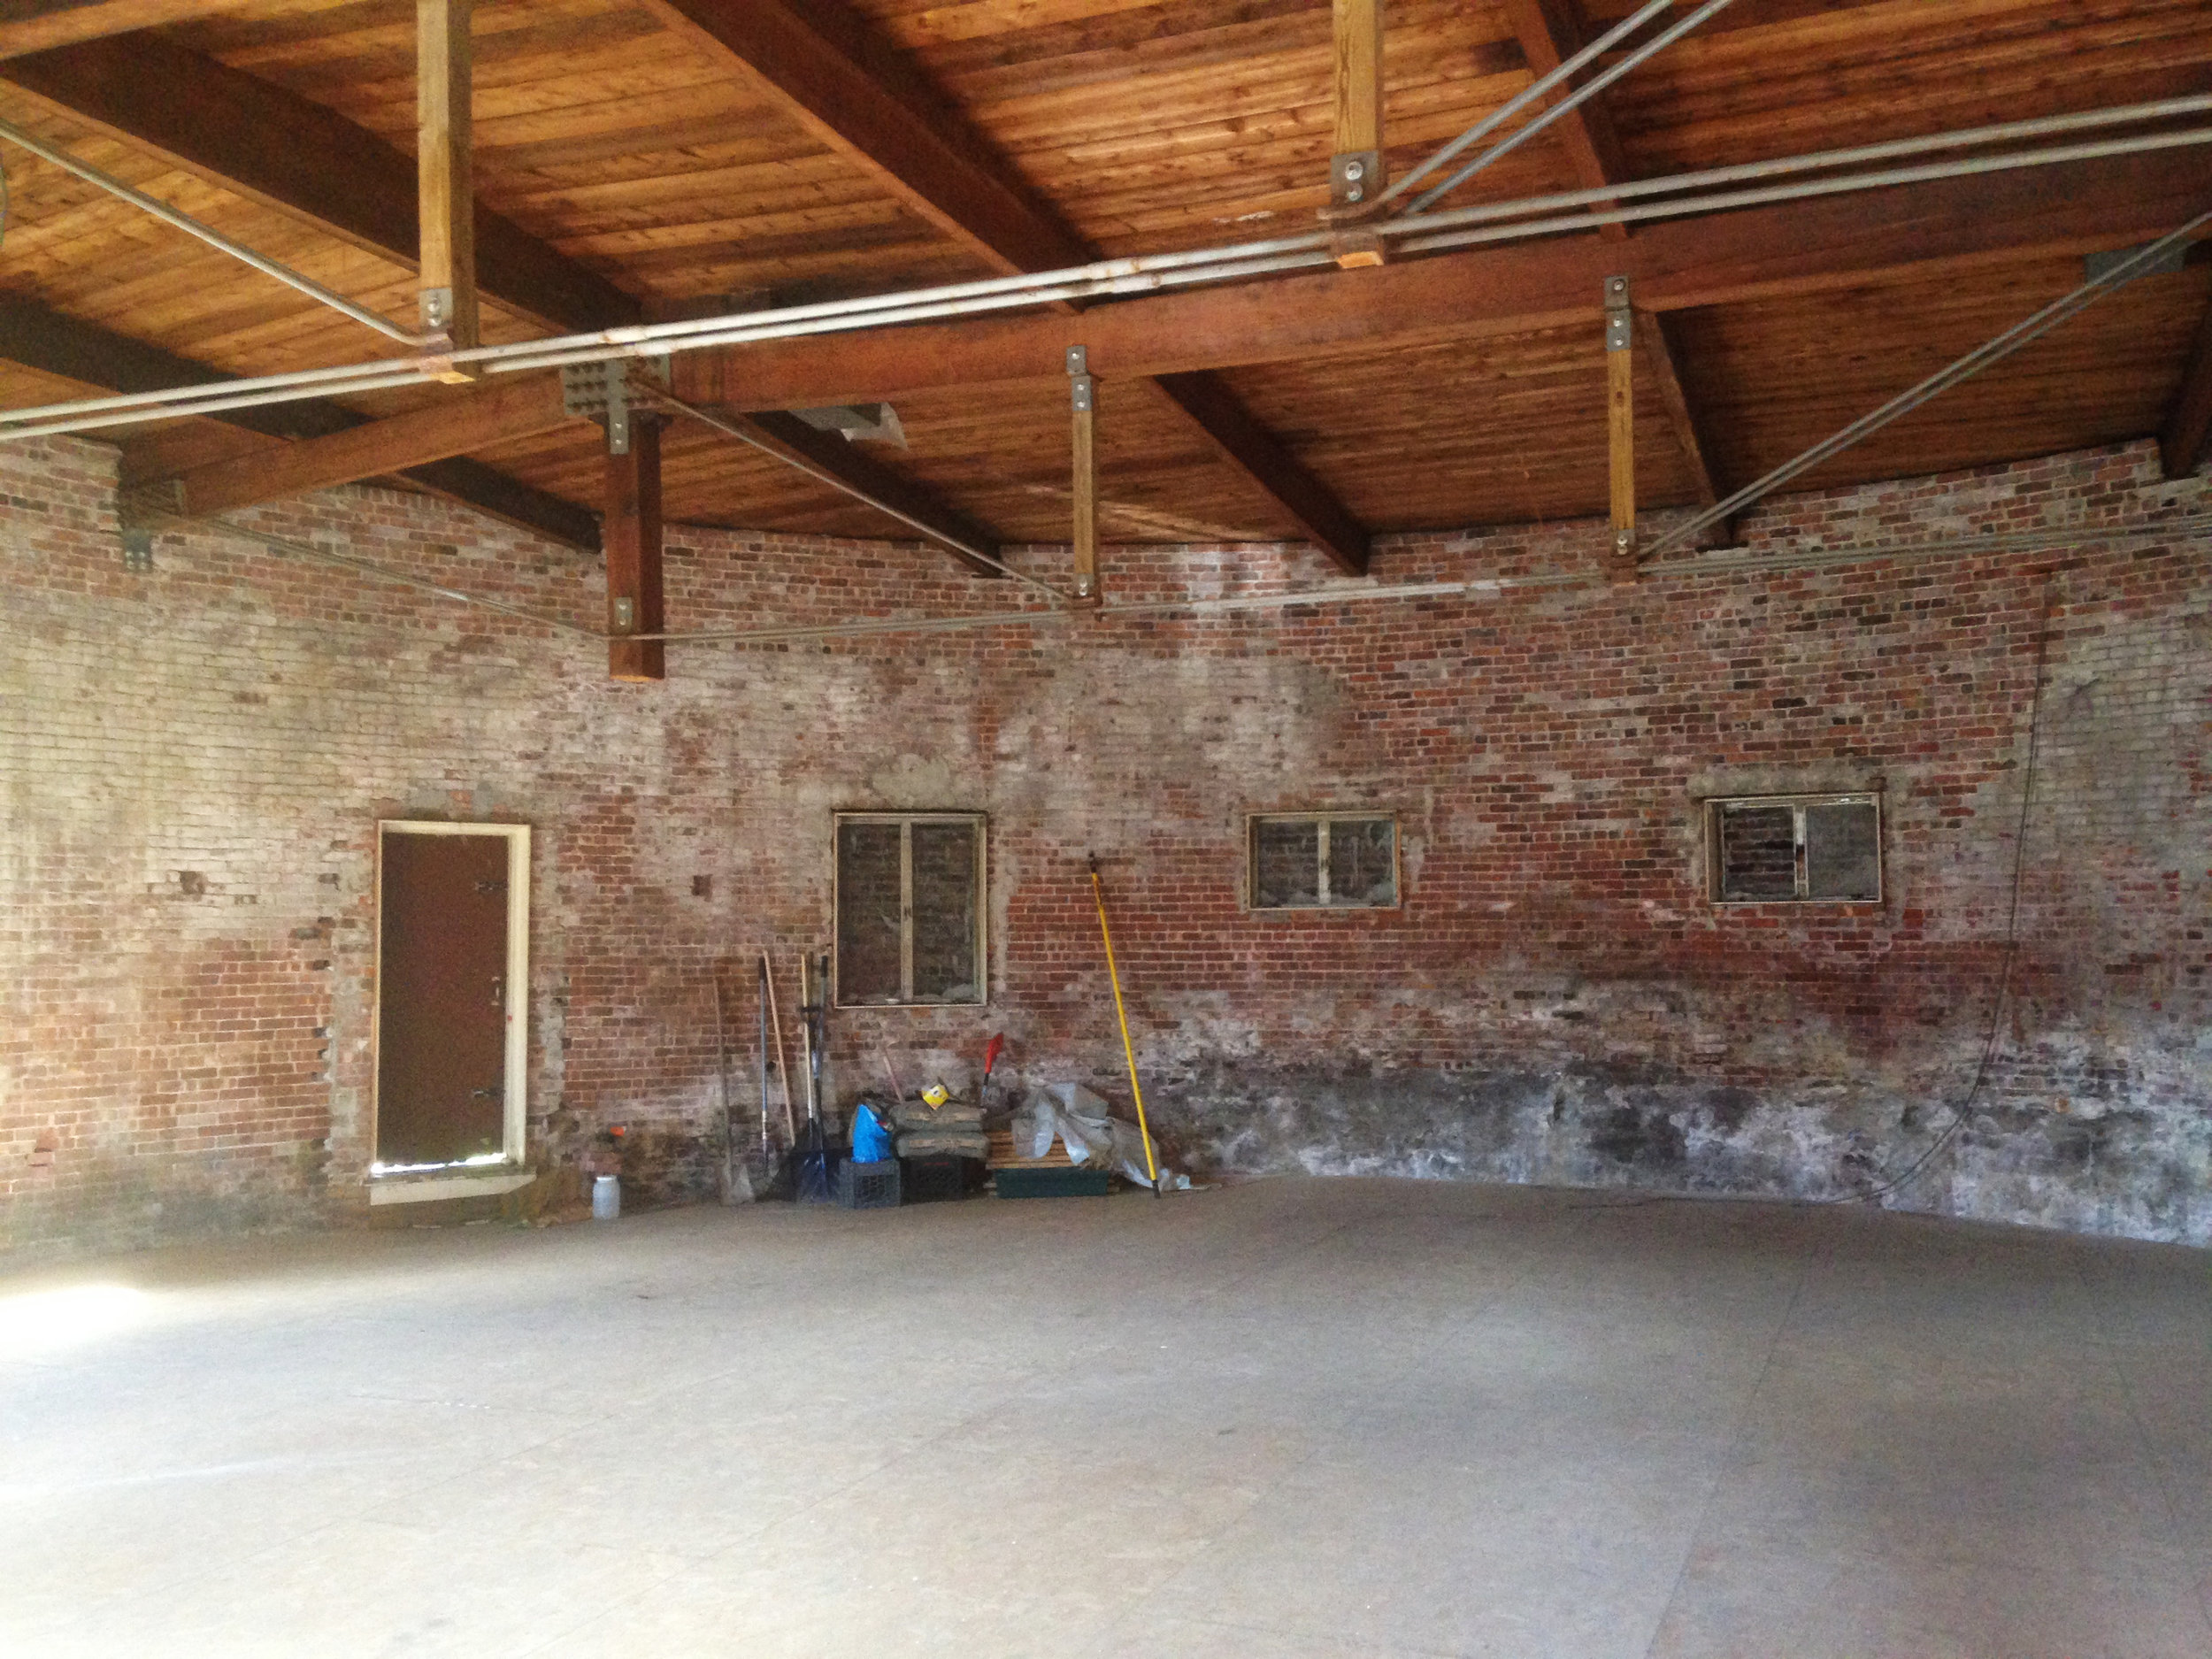 """One can see where a column was """"cut"""" short and restructured within a metal truss under the ceiling to create a completely open circular floor plan"""